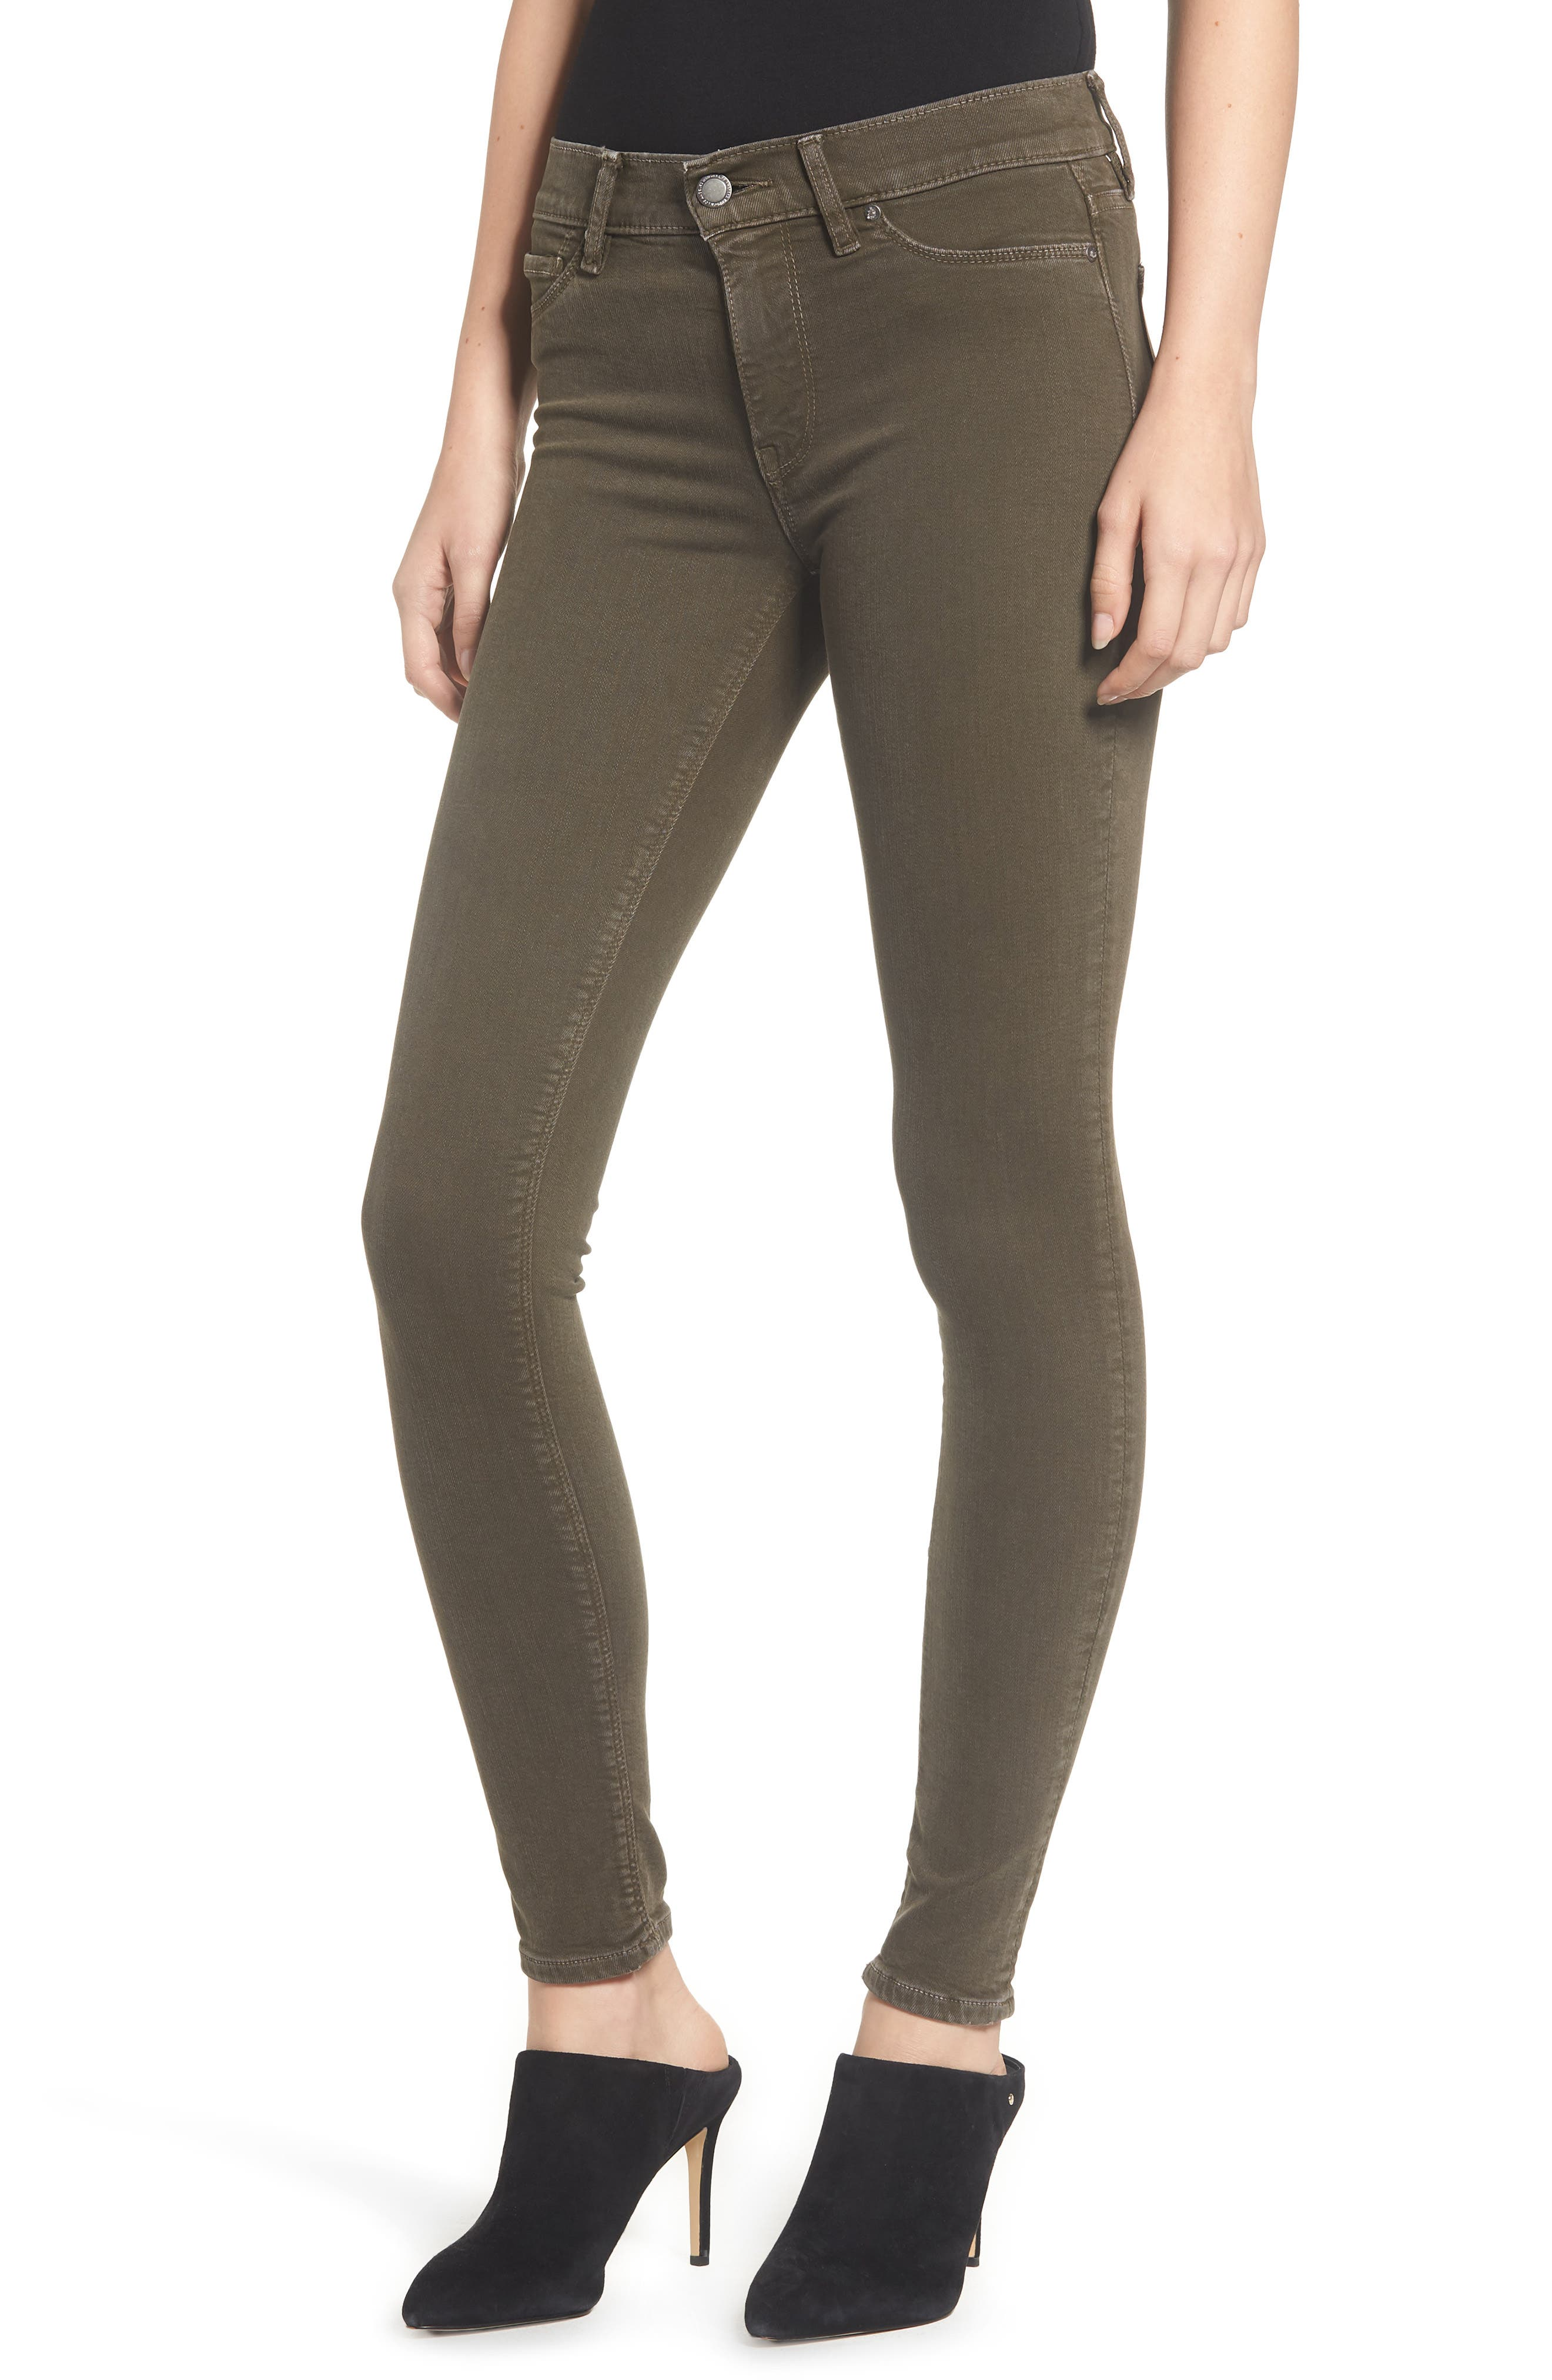 HudsonJeans Nico Super Skinny Jeans,                             Main thumbnail 1, color,                             DISTRESSED DARK FORESTER